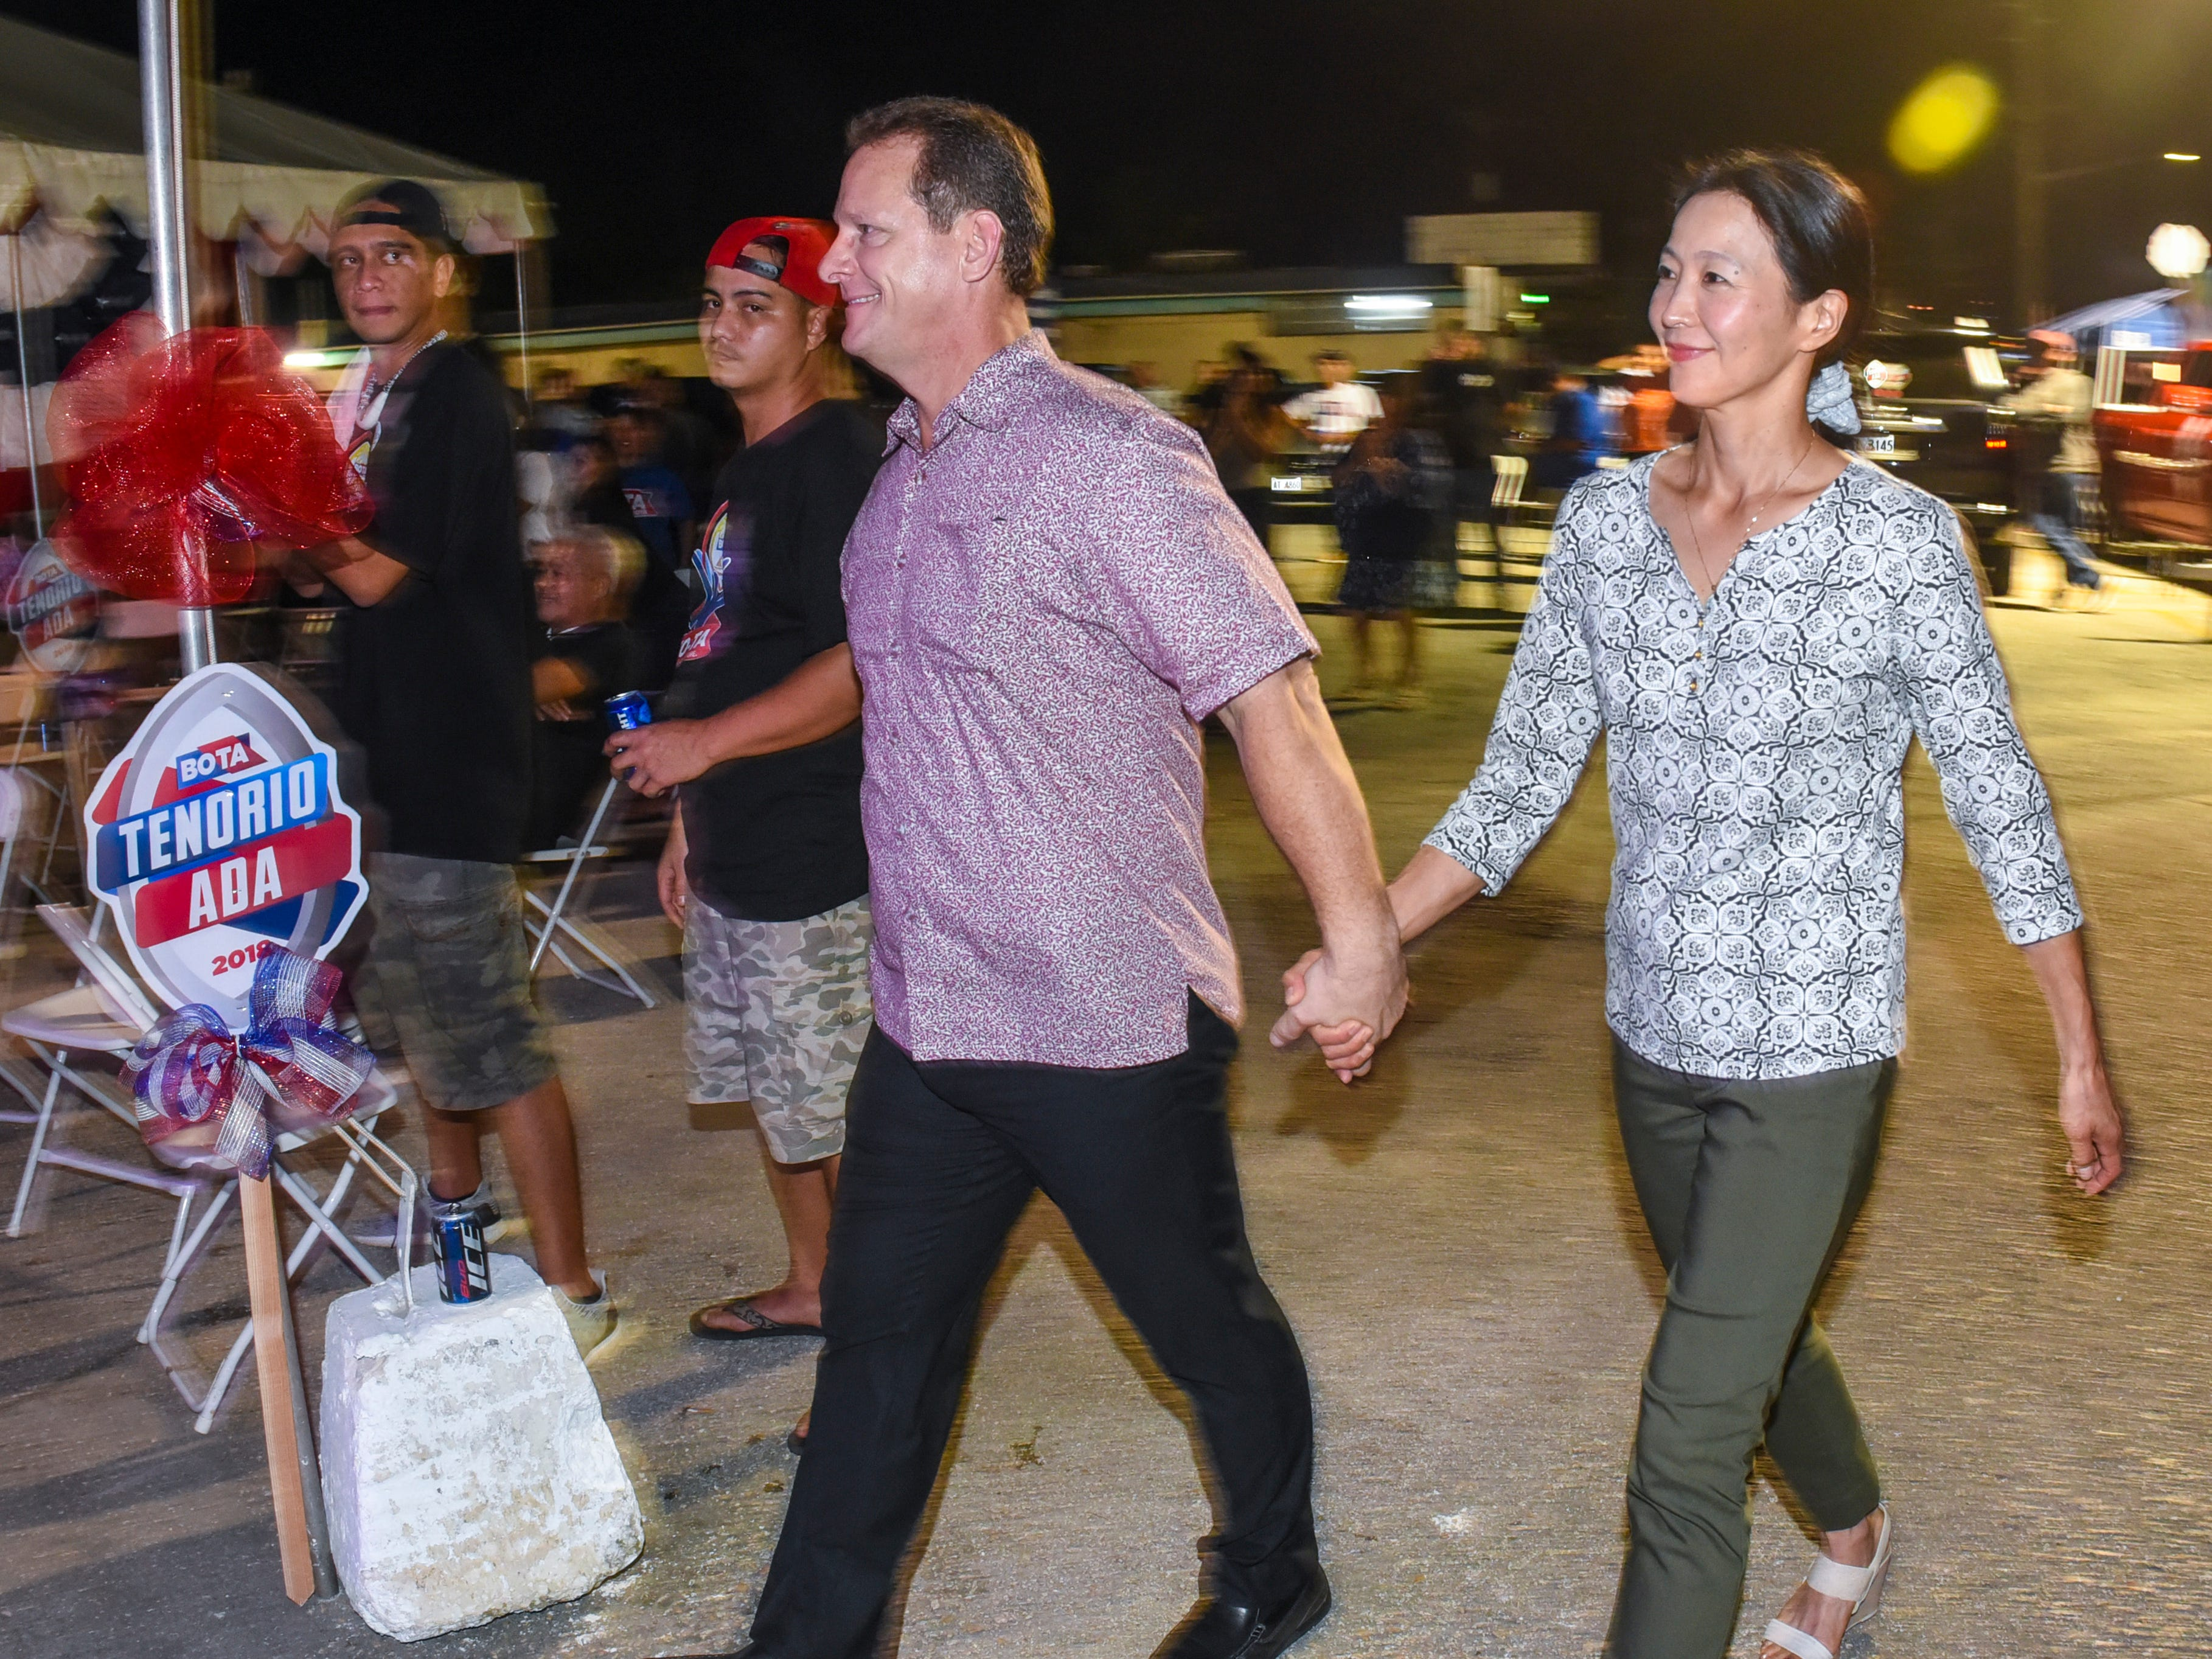 Republican gubernatorial candidate, Lt. Gov. Ray Tenorio, and his wife, Madoka, prepare to address supporters at the team's campaign headquarters in Tamuning during the early morning hours of Wednesday, Nov. 7, 2018.